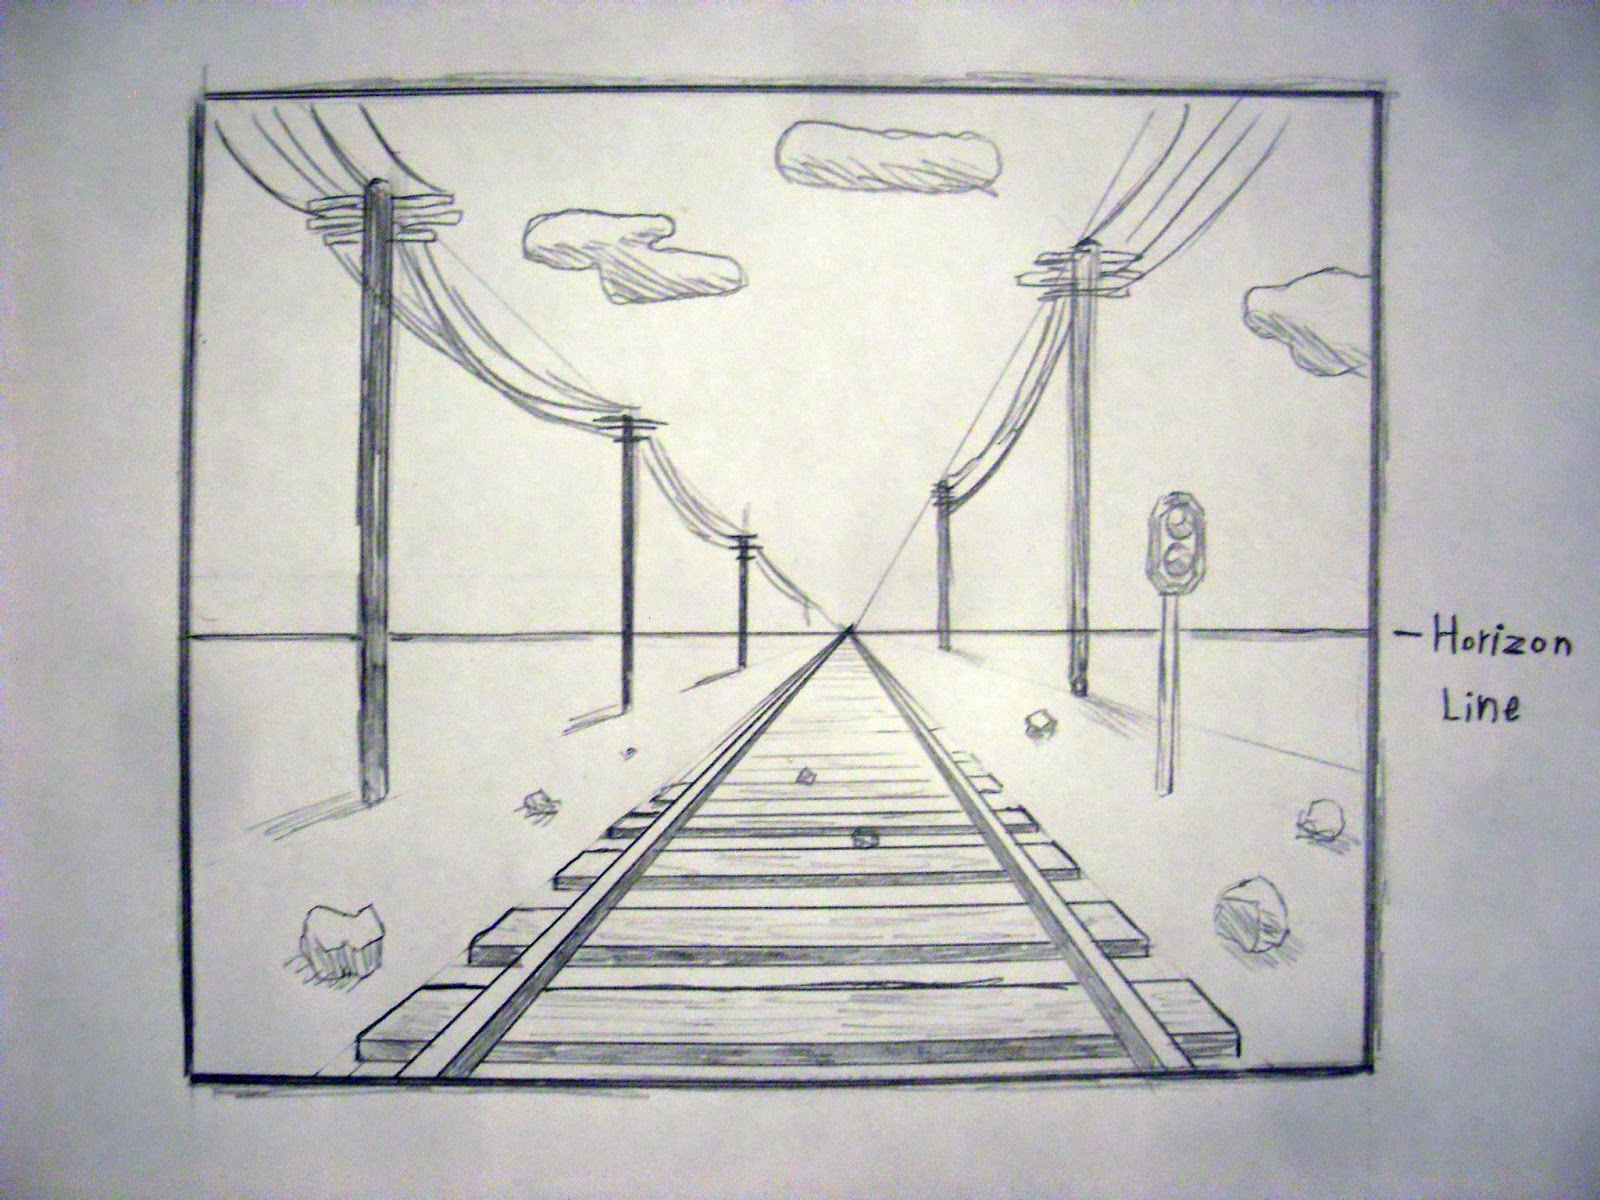 Cool One Point Perspective Drawings You have a drawing in ONE